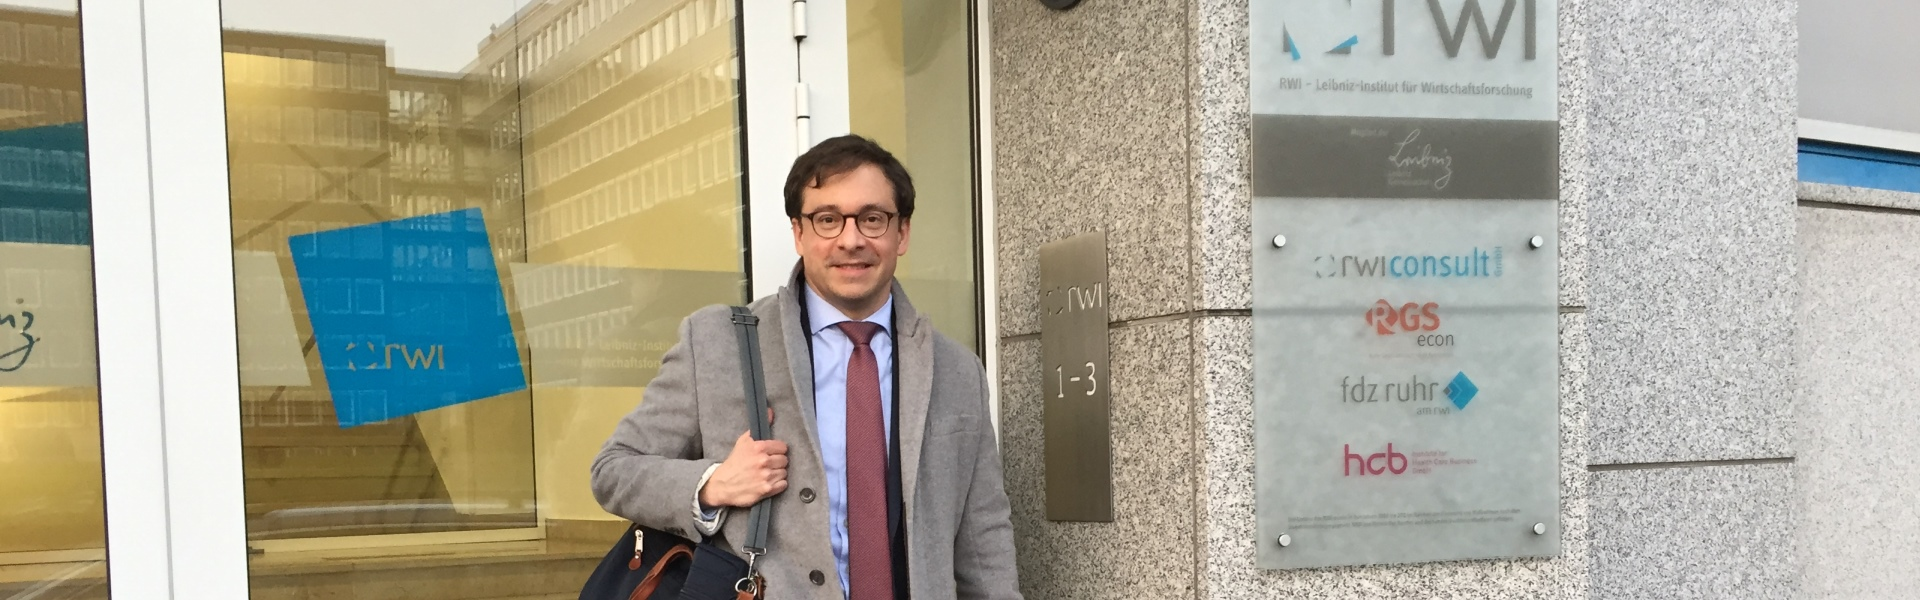 Professor Participates in Review of Germany's RWI Institute for Economic Research